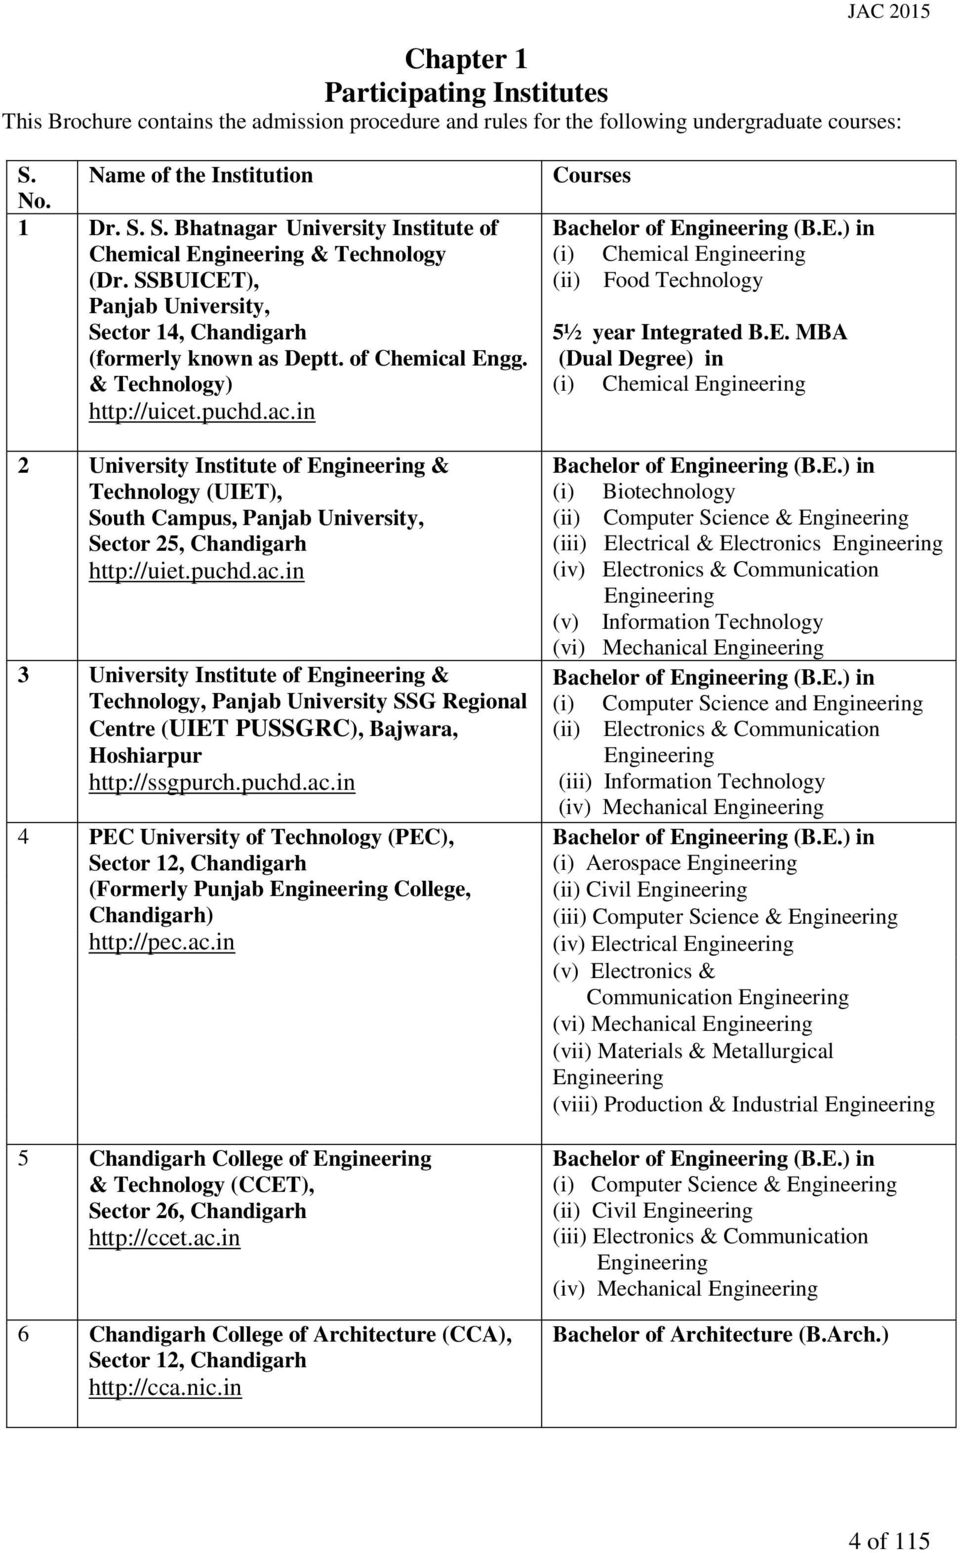 of Chemical Engg. & Technology) http://uicet.puchd.ac.in 2 University Institute of Engineering & Technology (UIET), South Campus, Panjab University, Sector 25, Chandigarh http://uiet.puchd.ac.in 3 University Institute of Engineering & Technology, Panjab University SSG Regional Centre (UIET PUSSGRC), Bajwara, Hoshiarpur http://ssgpurch.